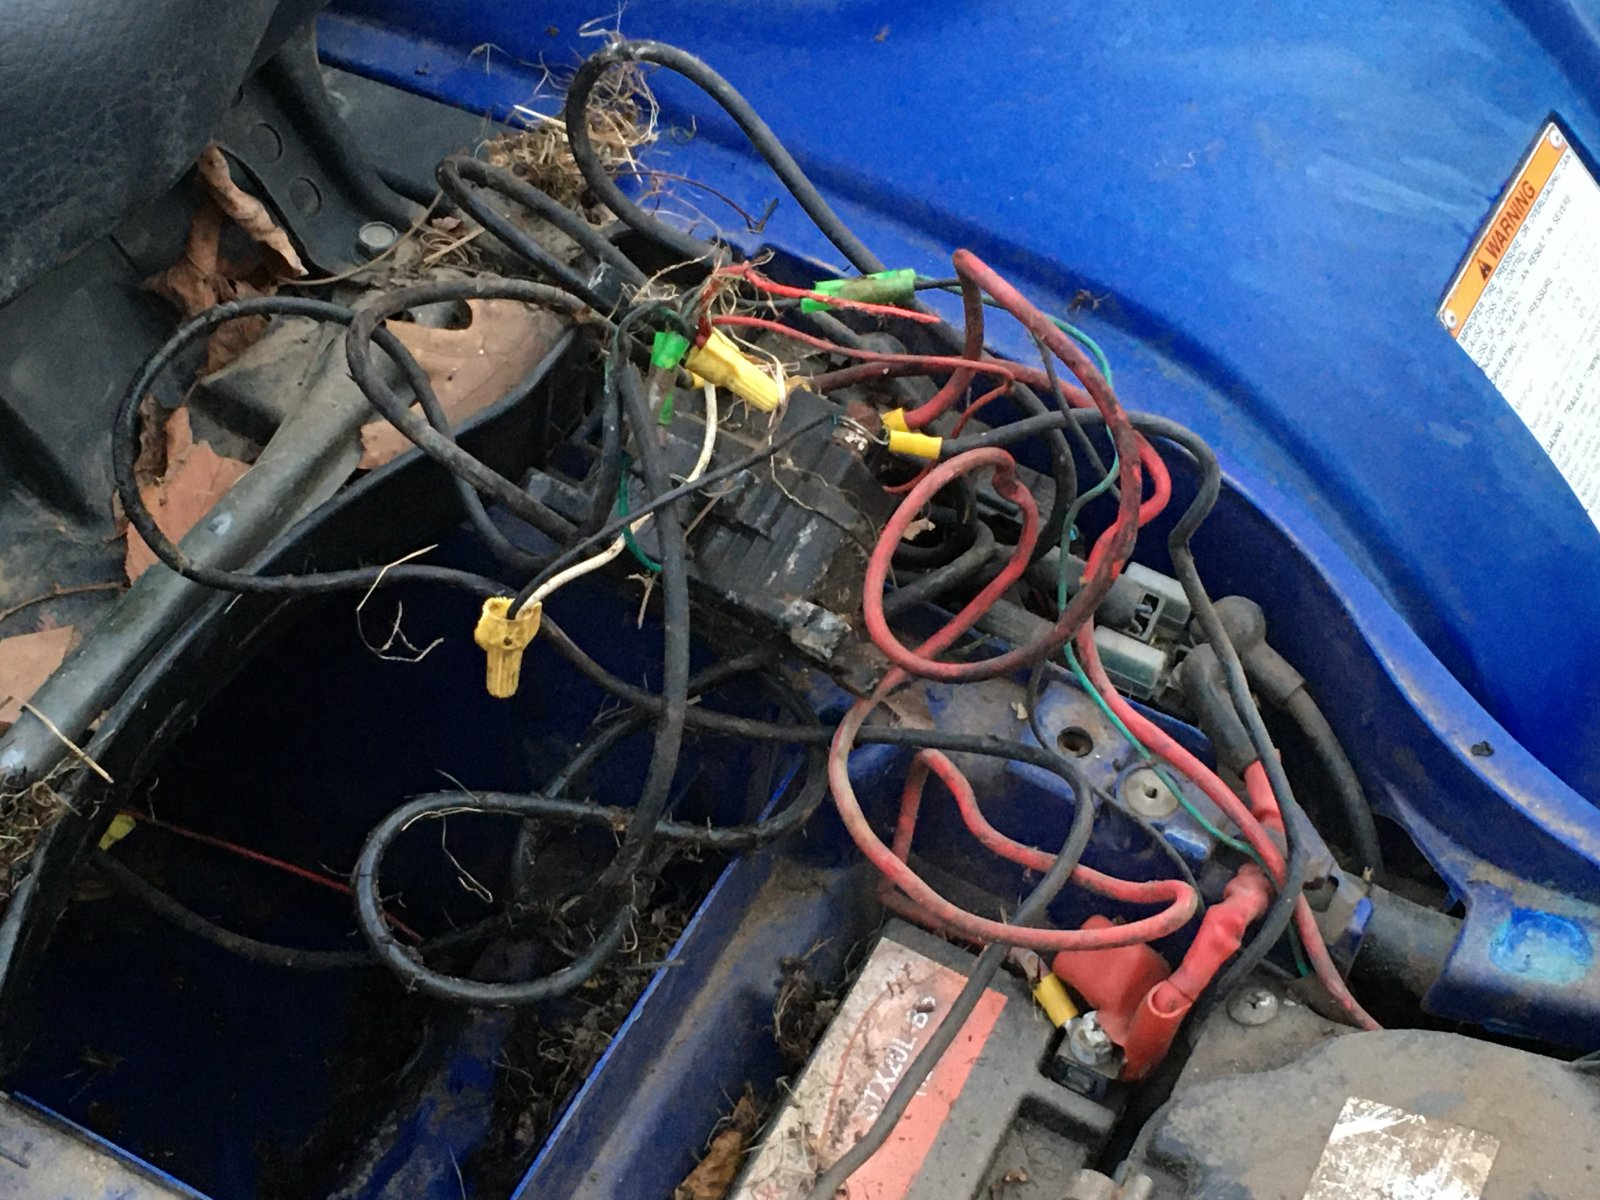 2004 Yamaha Grizzly Wiring Issues